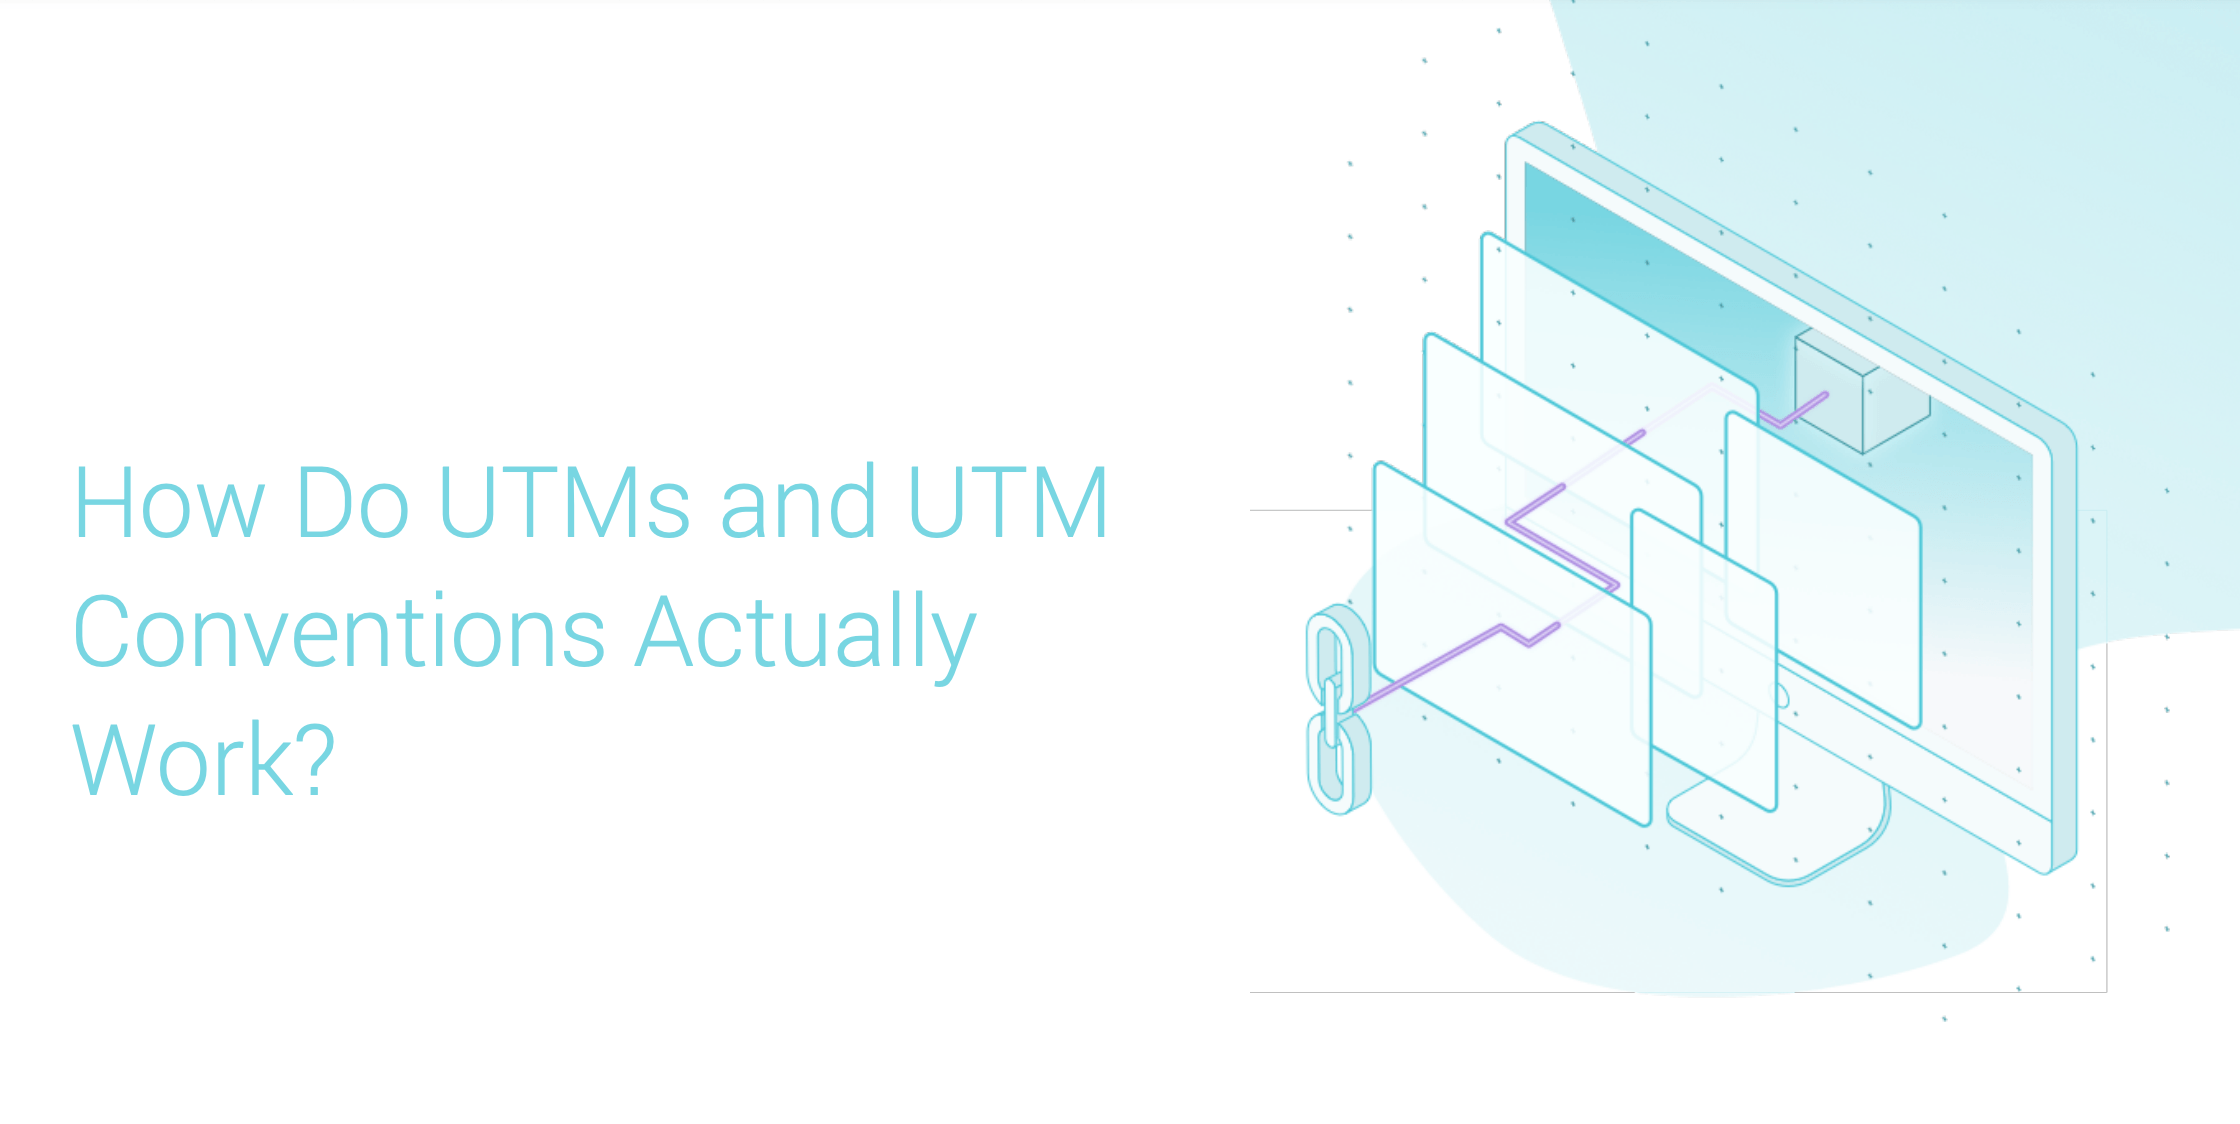 How Do UTMs & UTM Conventions Actually Work